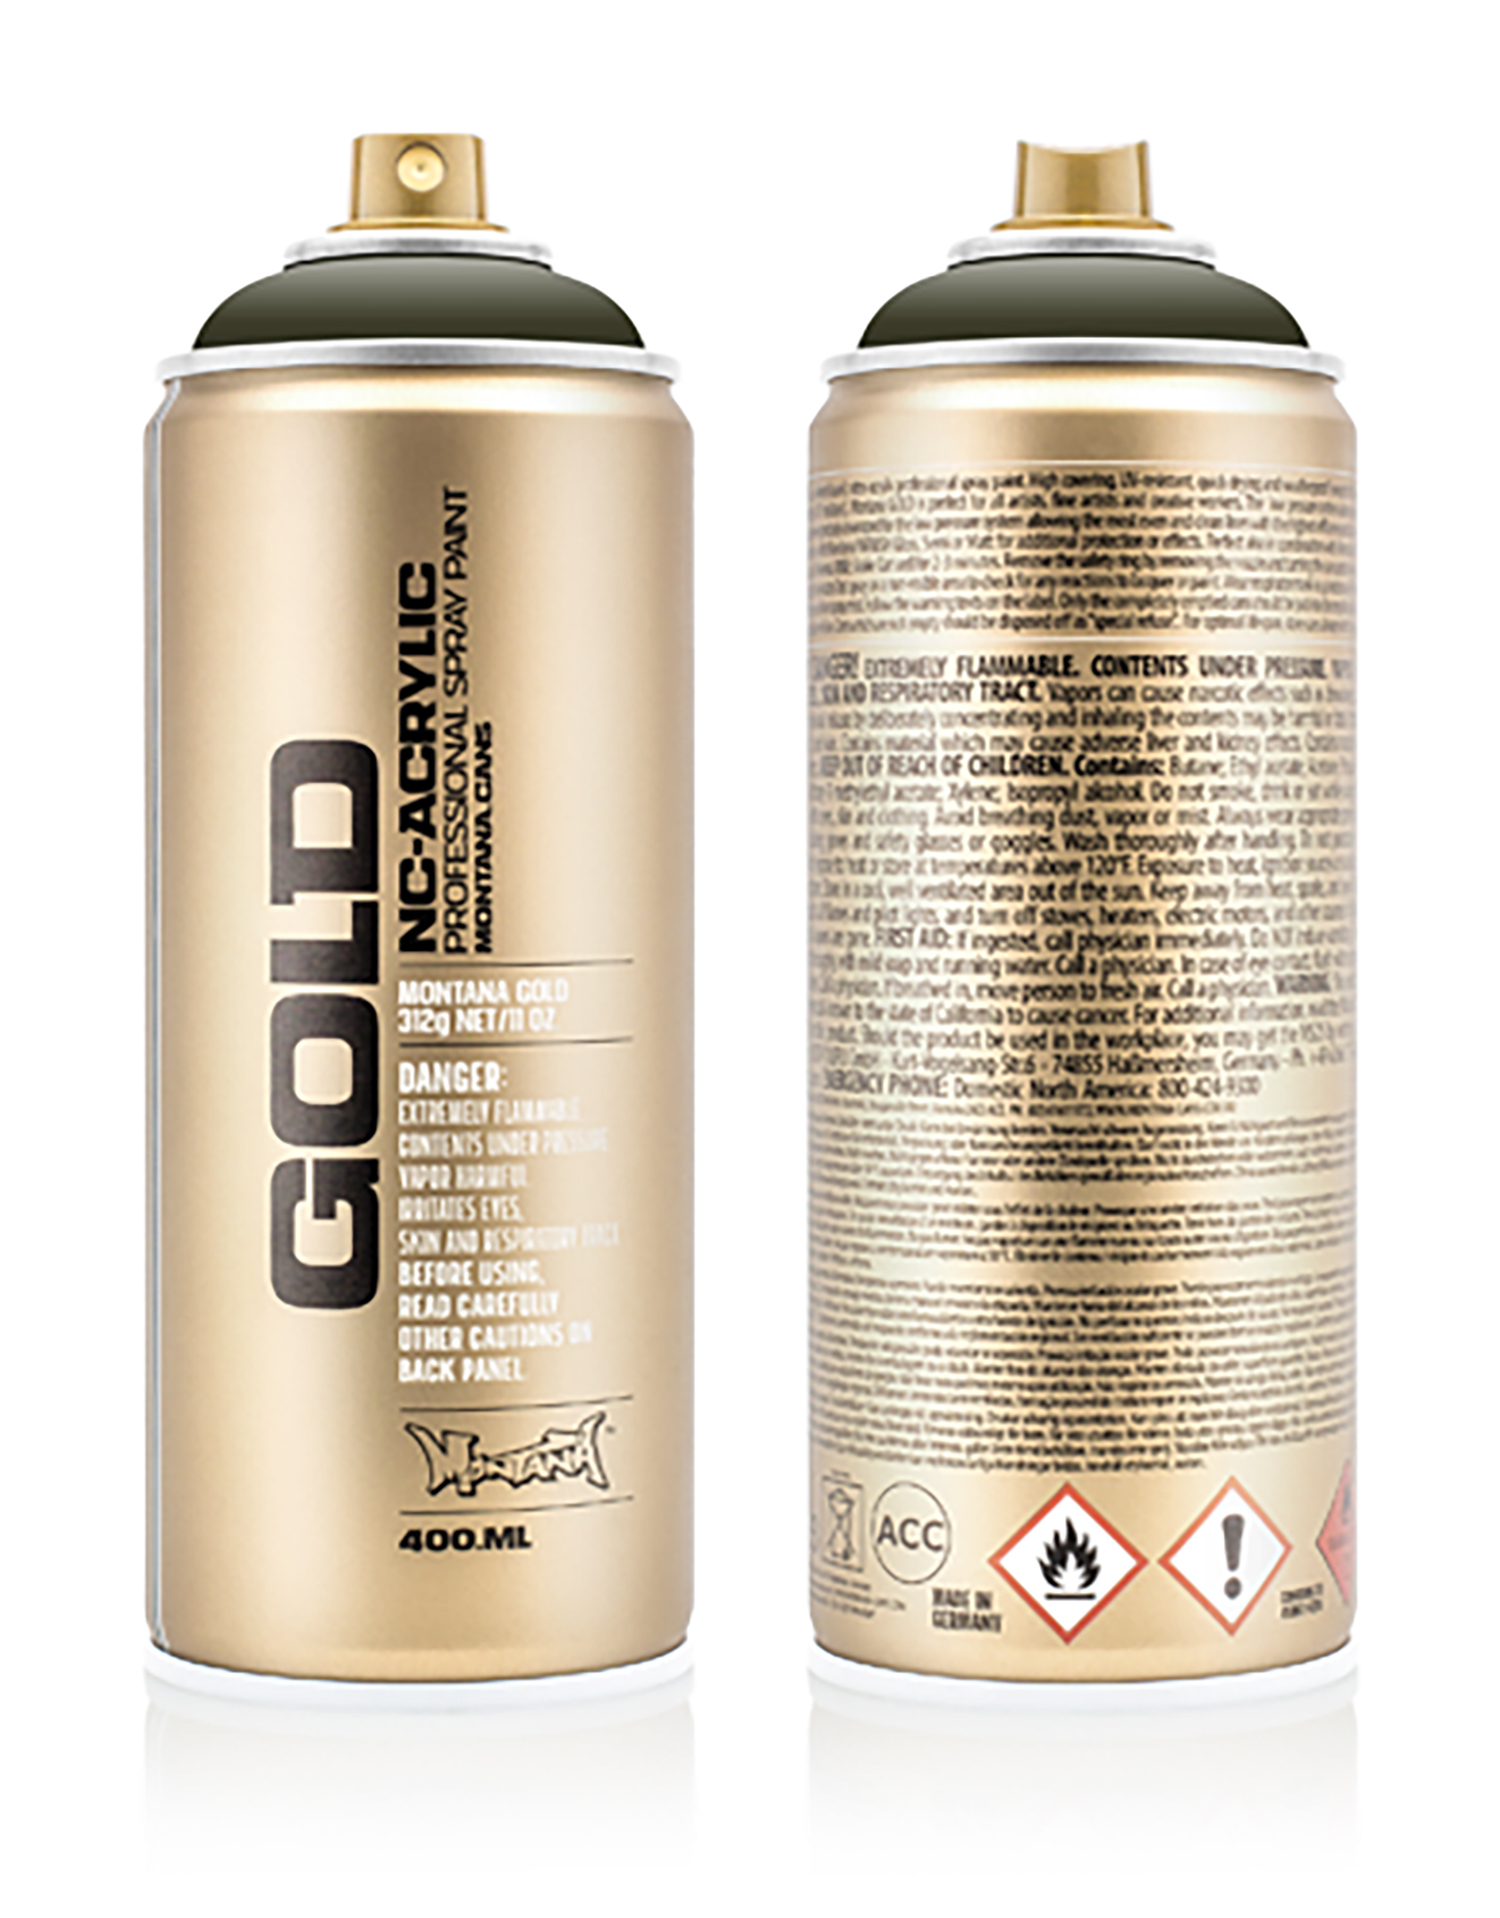 MONTANA-GOLD-SPRAY-400ML-CL-6420